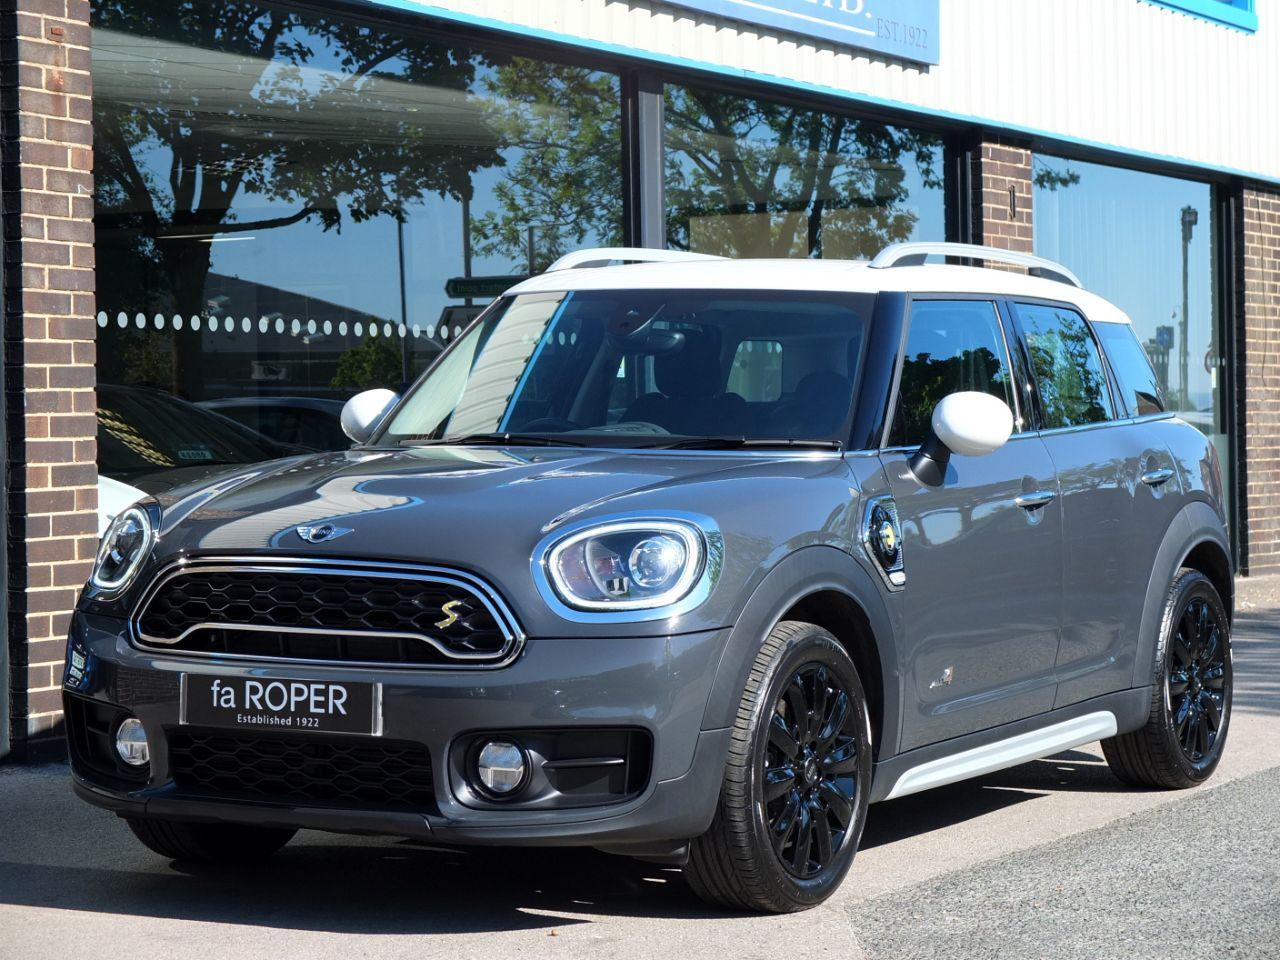 Mini Countryman 1.5 Cooper S E ALL4 PHEV Auto (Chili Pack) Hatchback Petrol / Electric Hybrid Thunder Grey MetallicMini Countryman 1.5 Cooper S E ALL4 PHEV Auto (Chili Pack) Hatchback Petrol / Electric Hybrid Thunder Grey Metallic at fa Roper Ltd Bradford